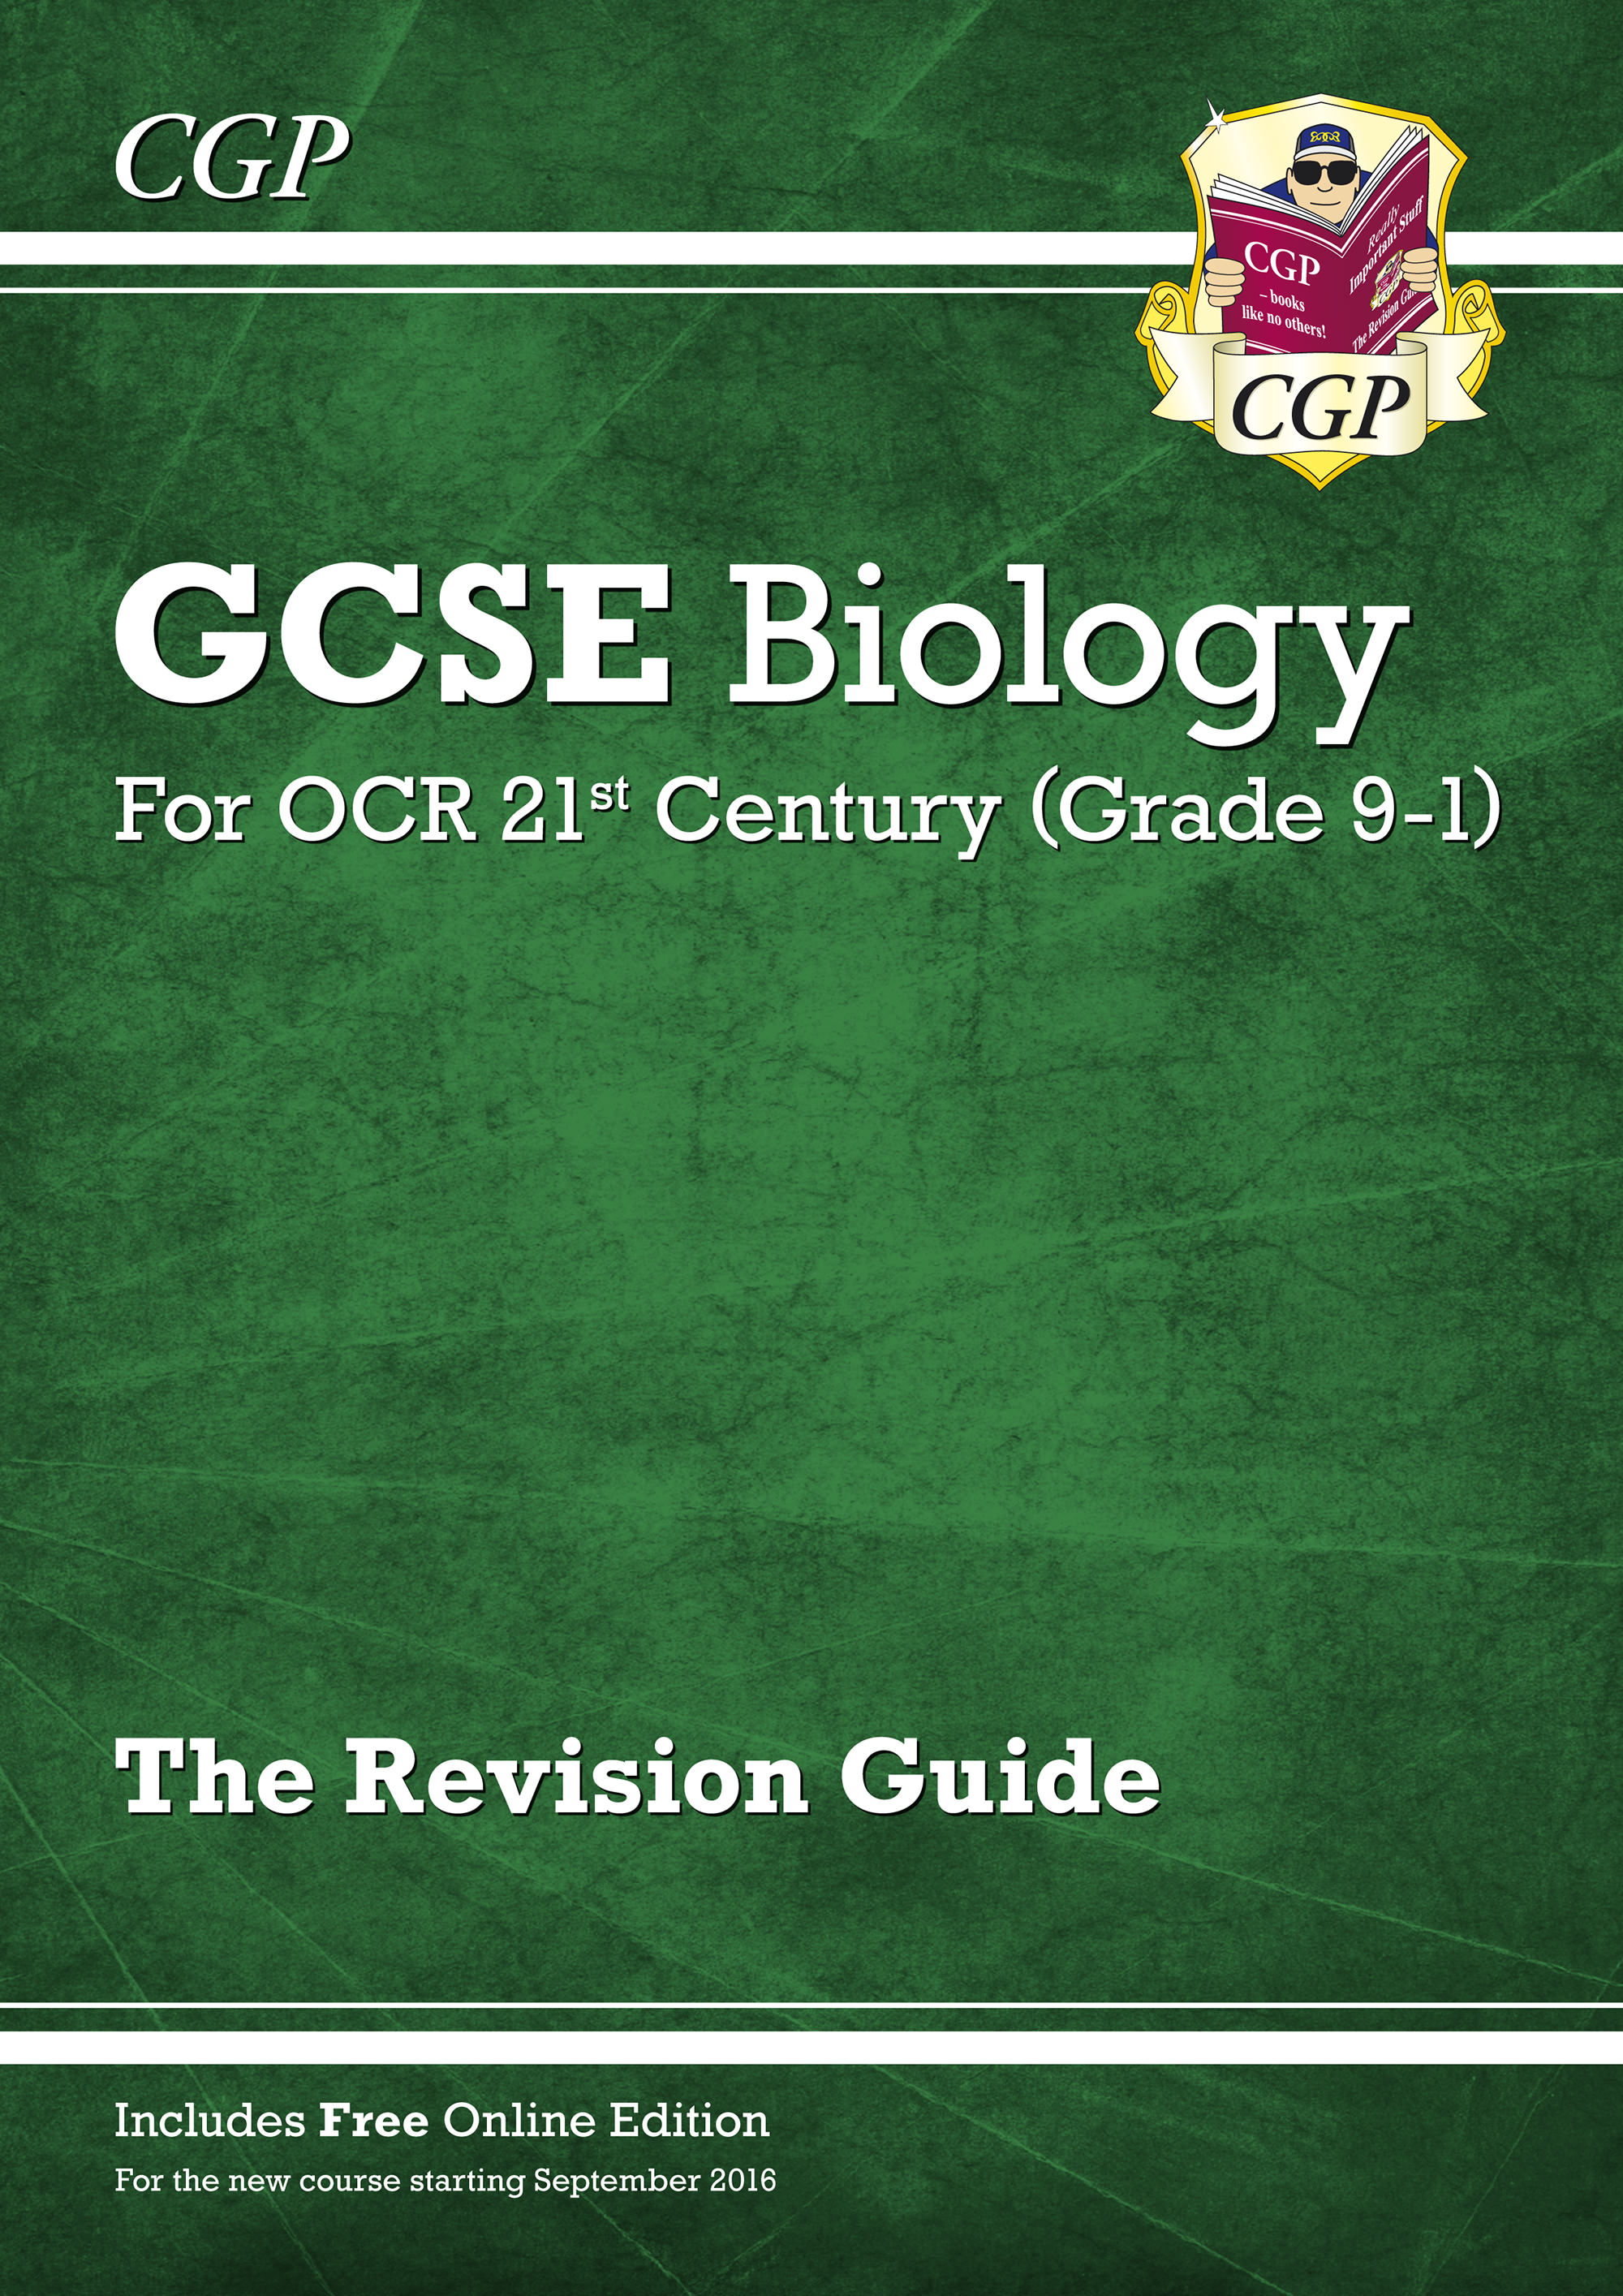 B2R45 - Grade 9-1 GCSE Biology: OCR 21st Century Revision Guide with Online Edition